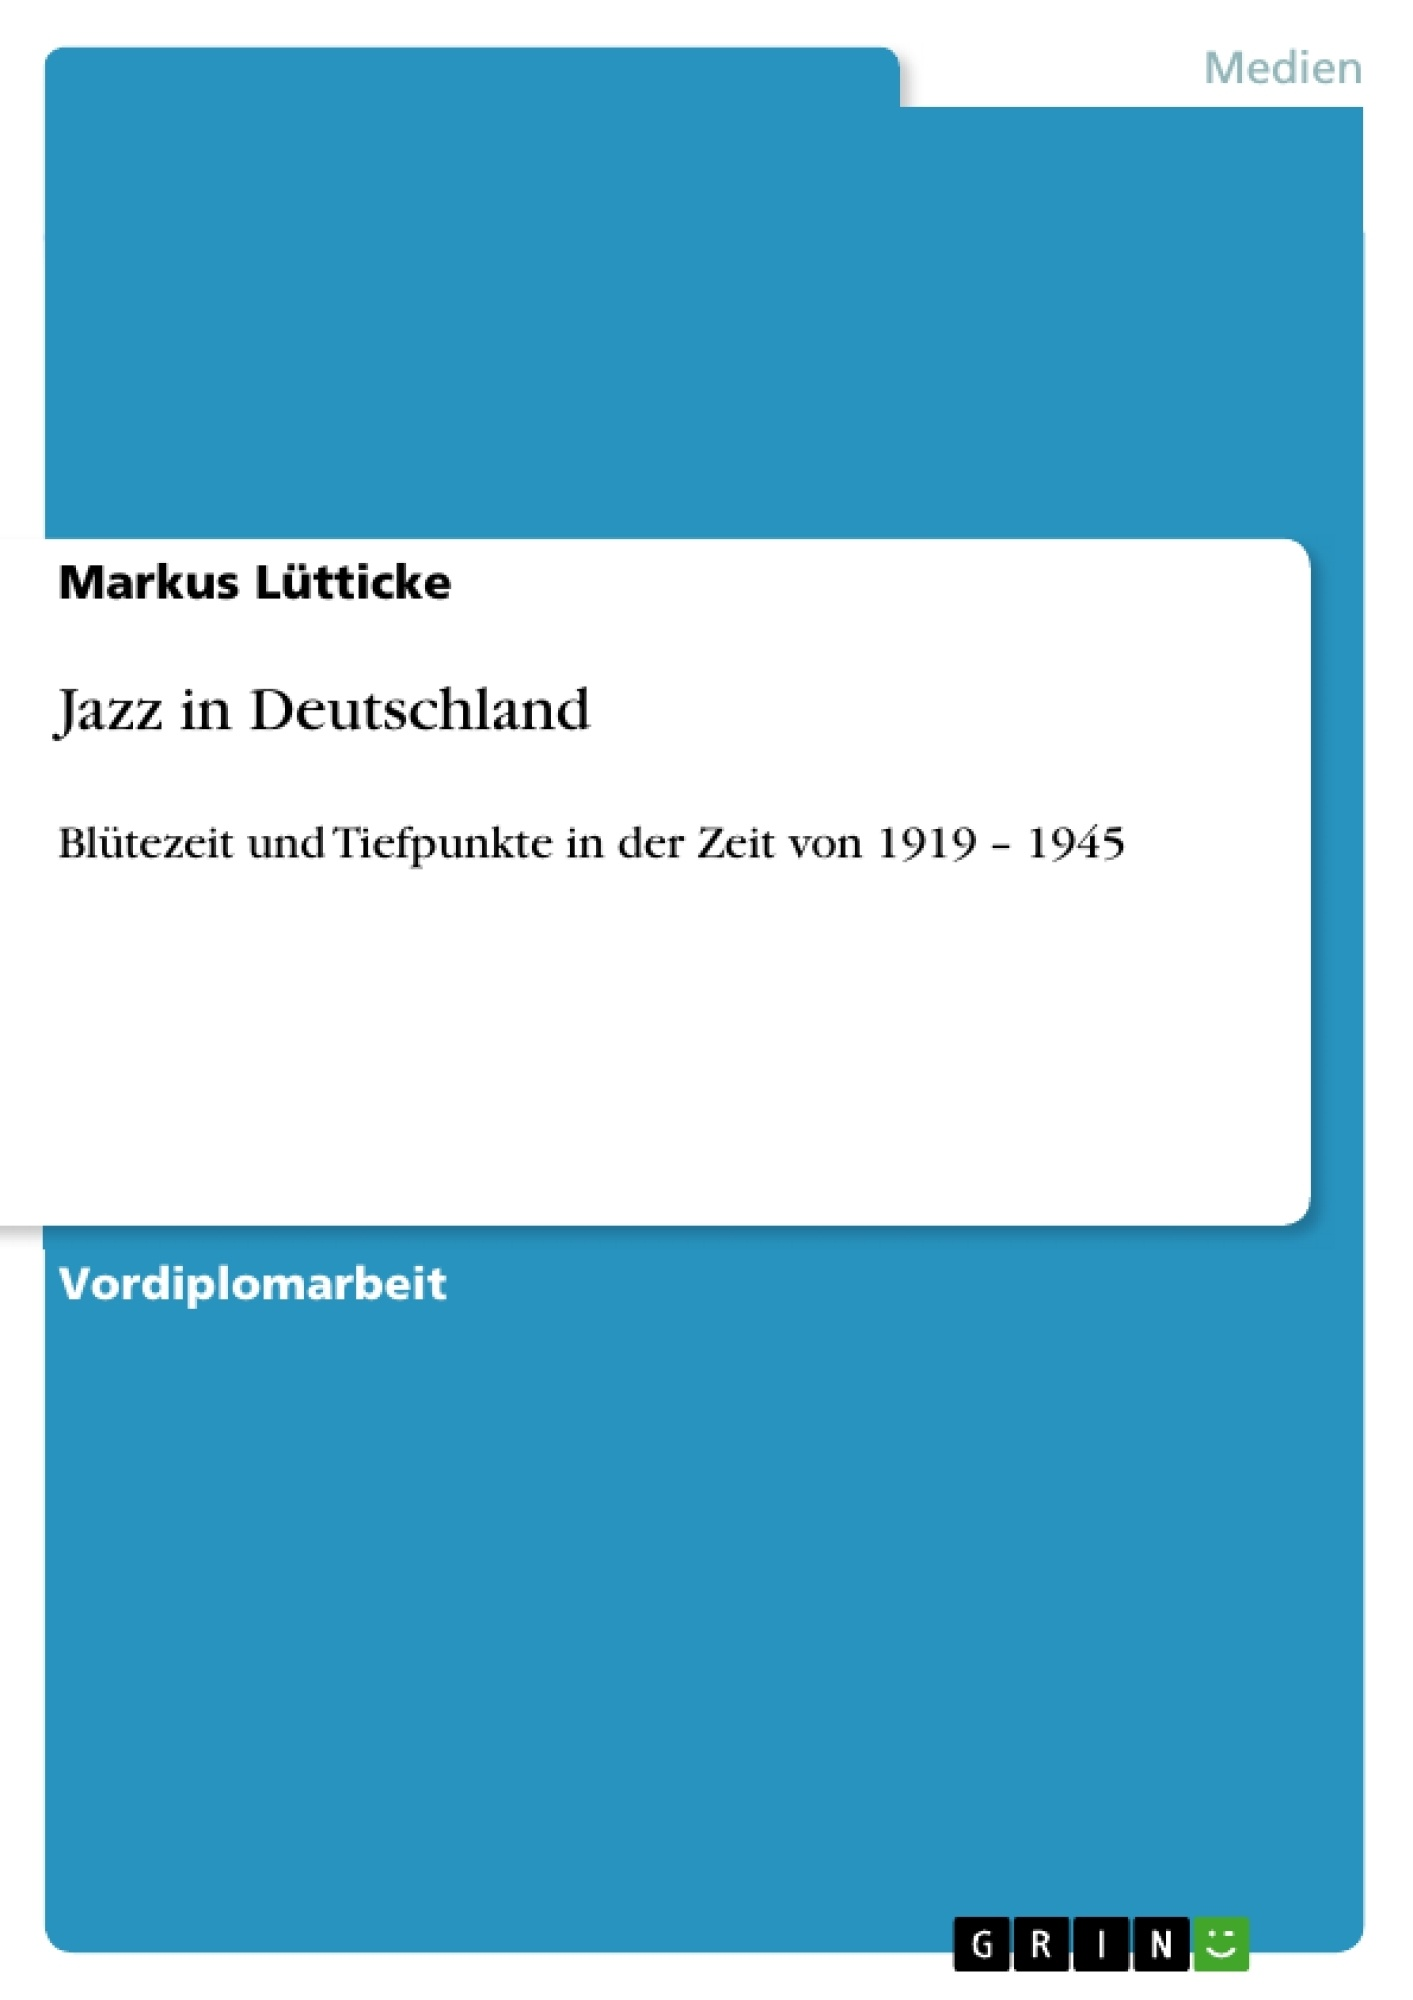 Titel: Jazz in Deutschland